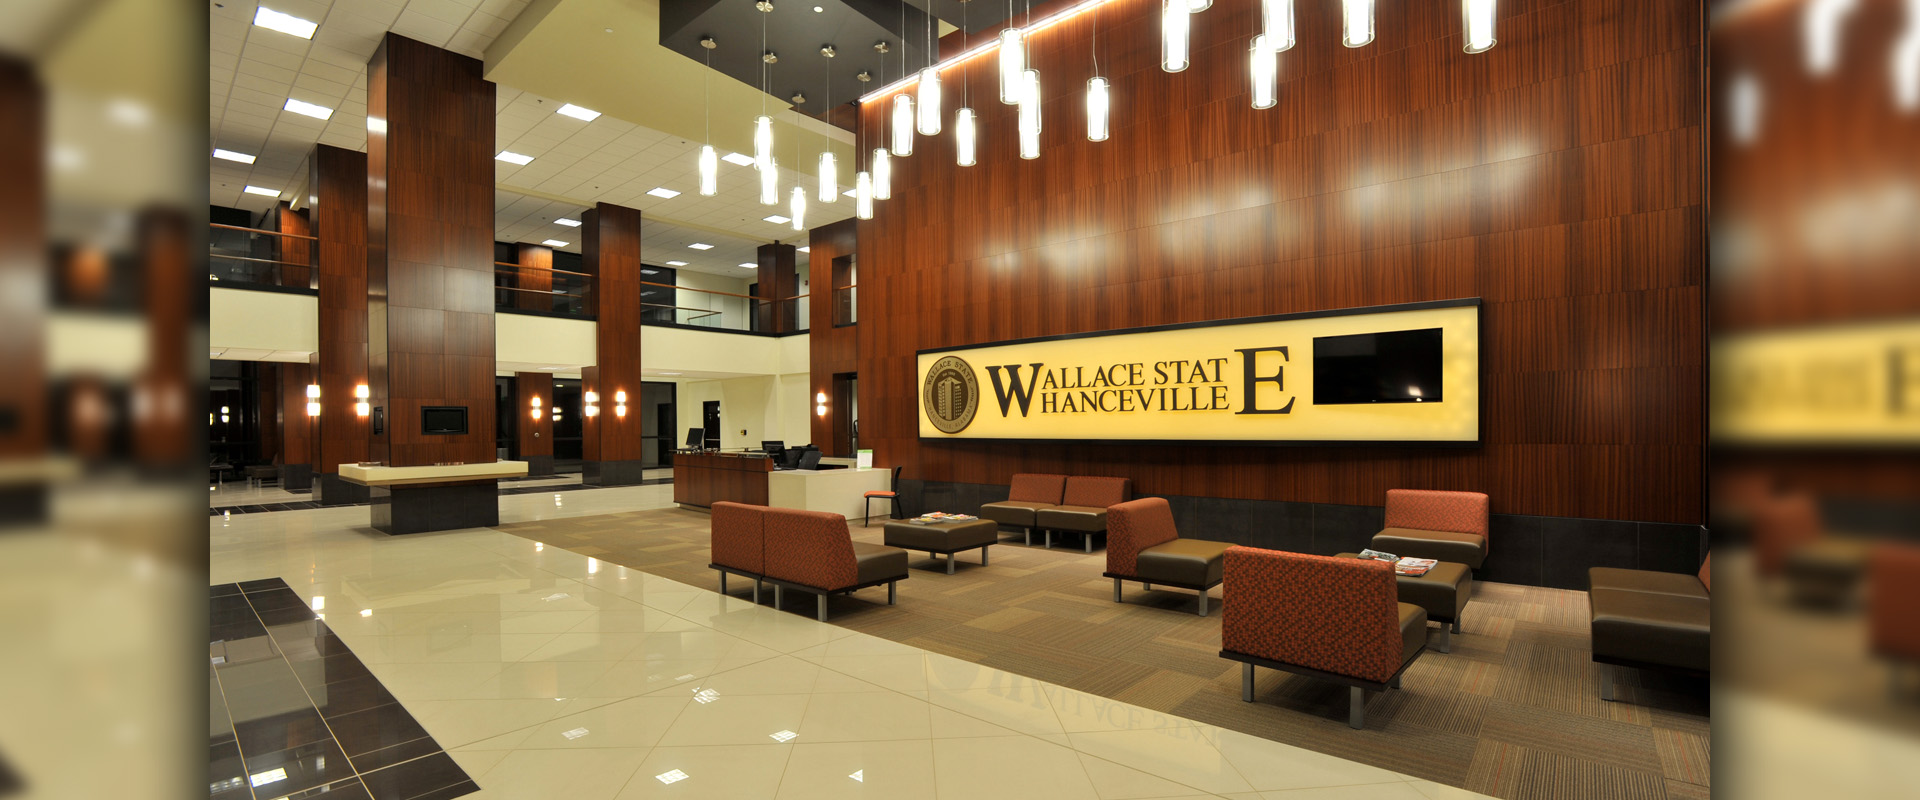 Wallace State University James C Bailey Center - Reception Area